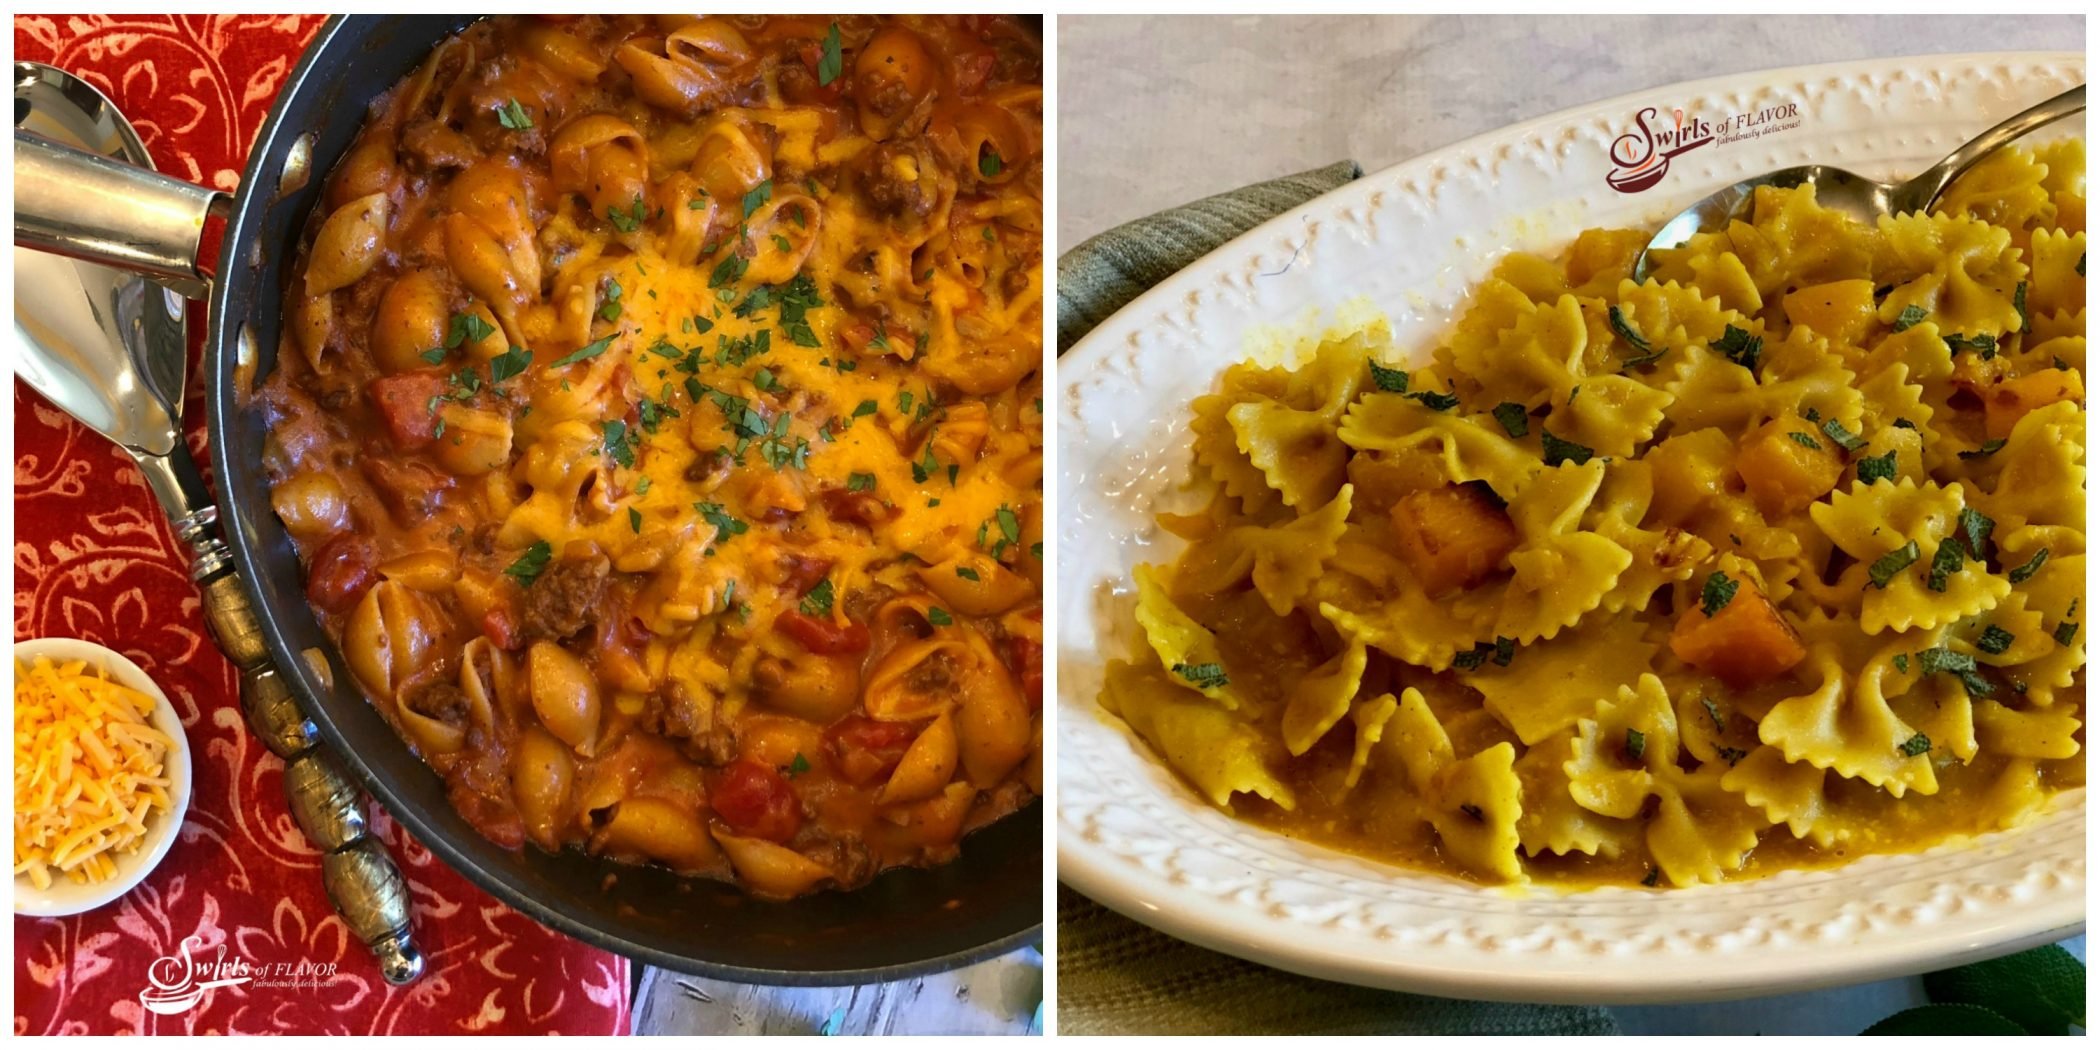 Chili Mac and Cheese and Butternut Squash Pasta and Sage